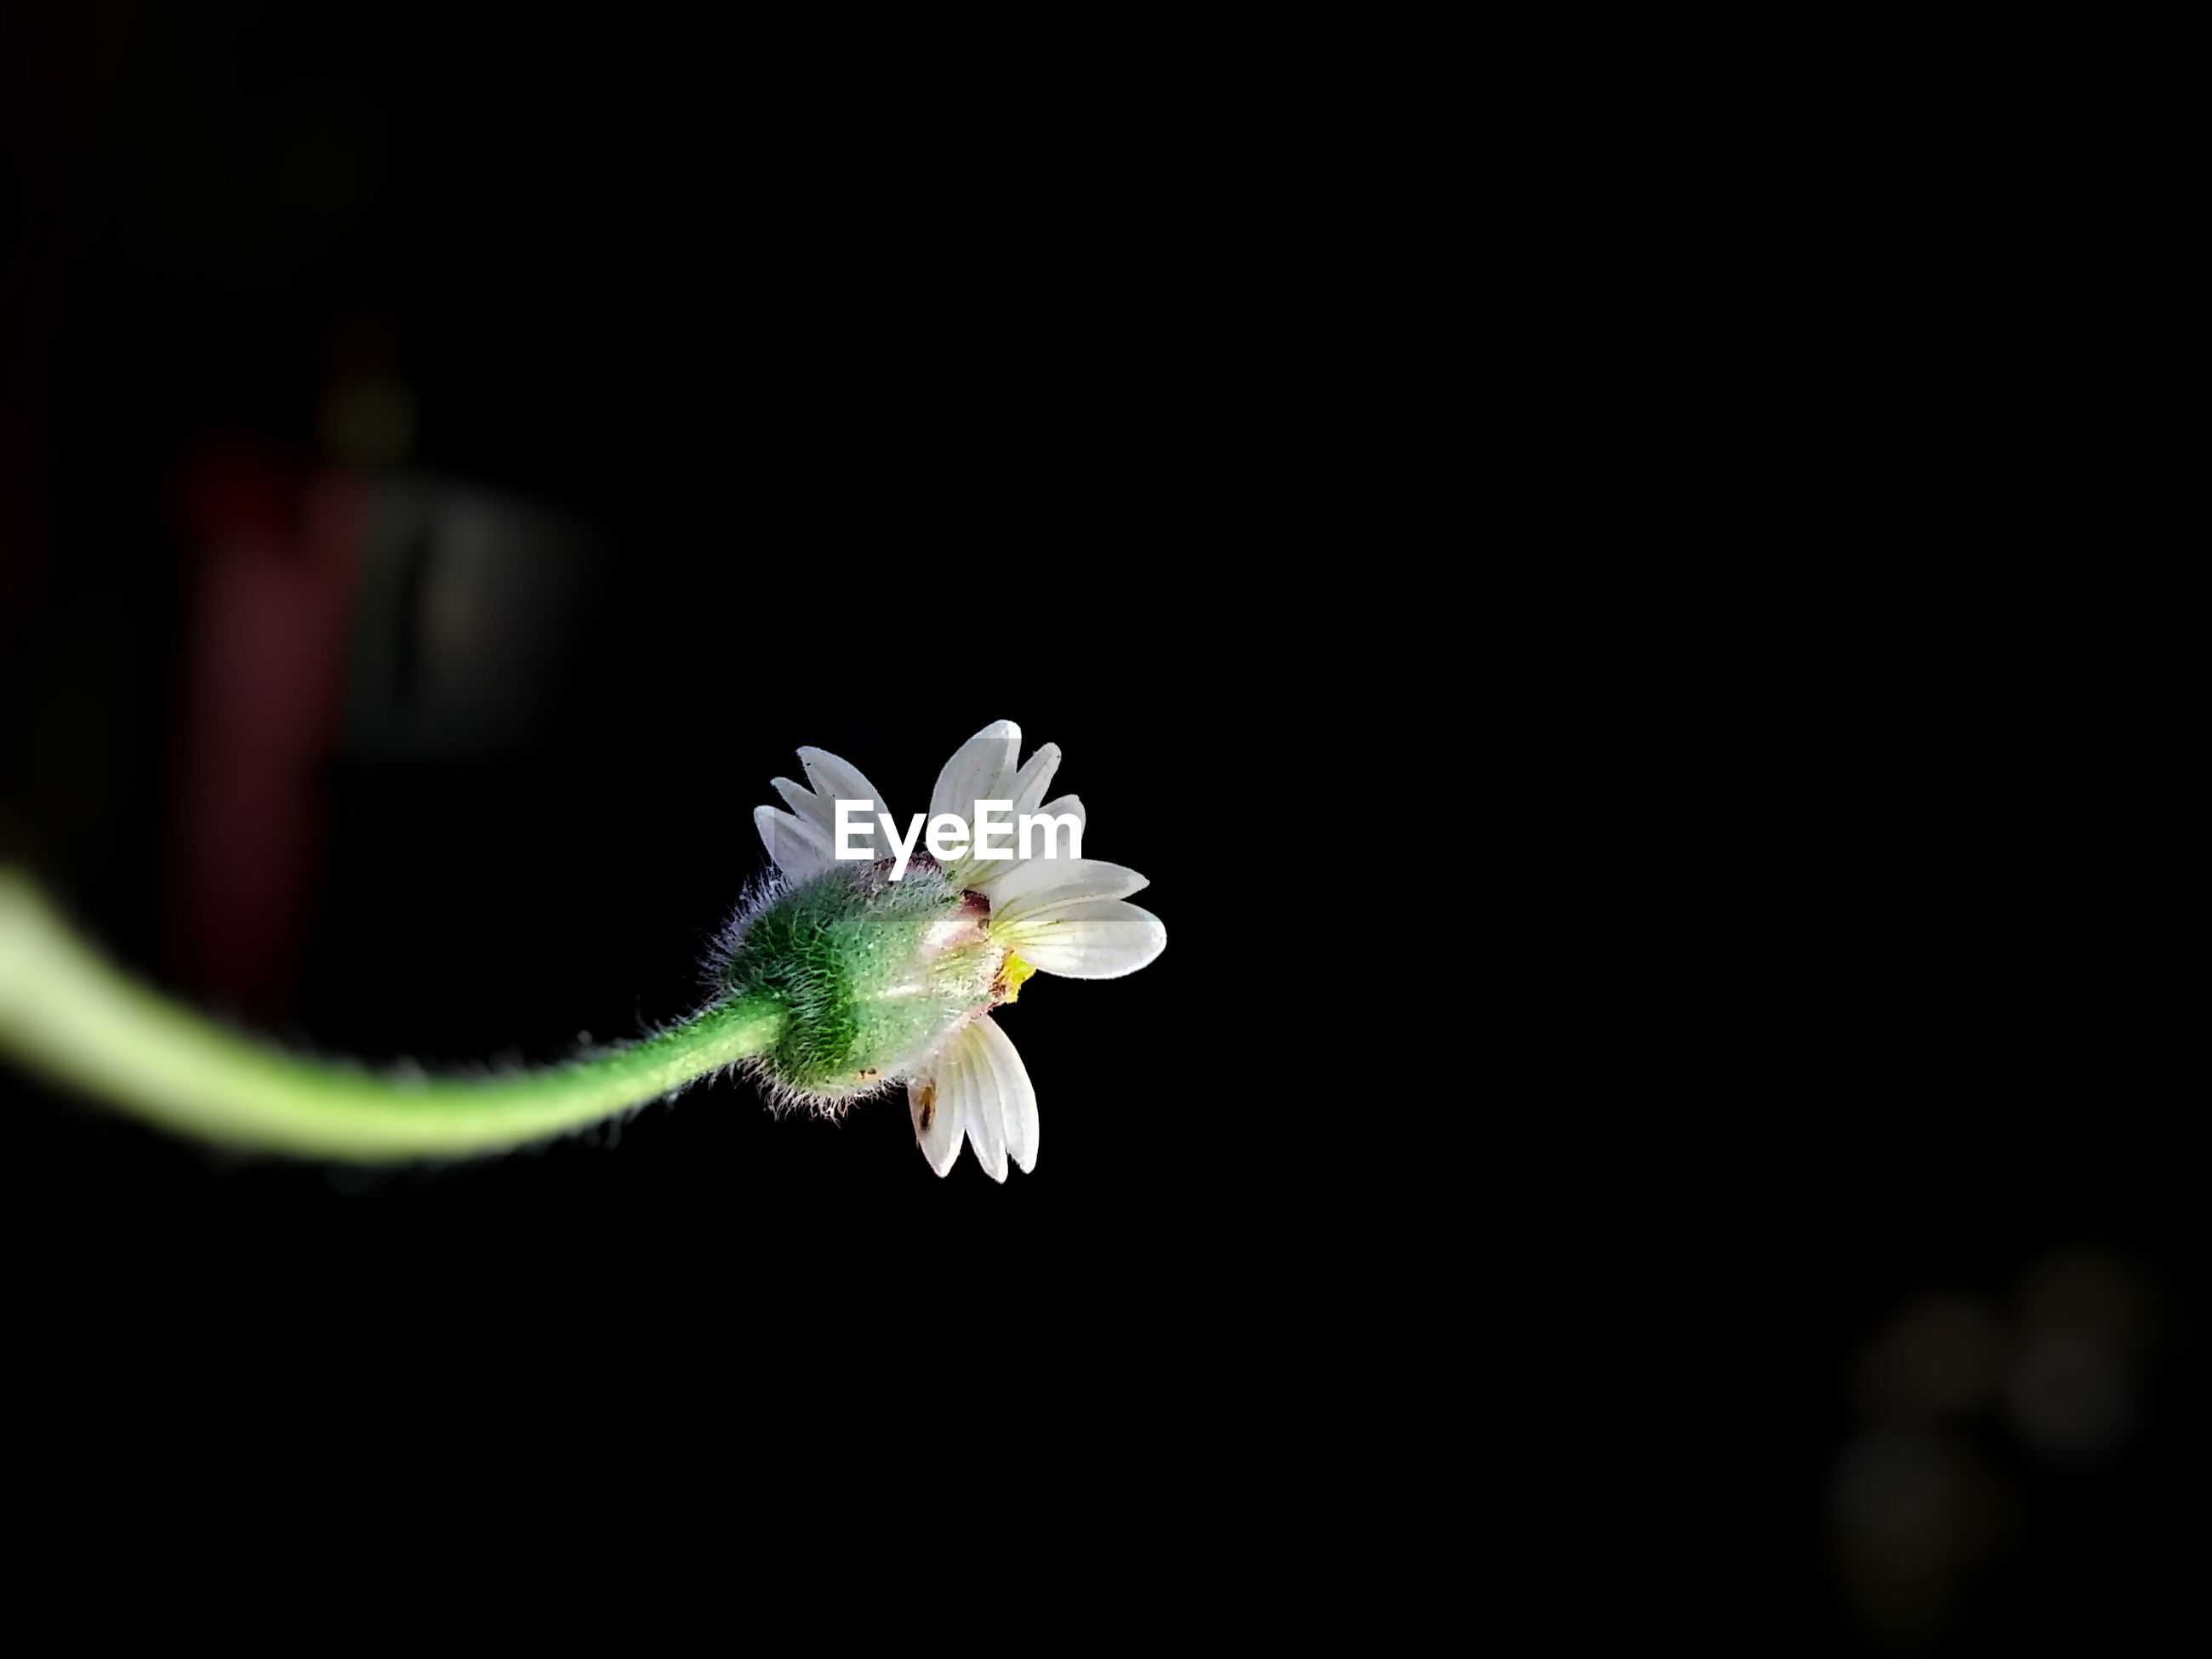 flower, freshness, fragility, close-up, flower head, growth, petal, white, single flower, selective focus, springtime, nature, focus on foreground, black background, blossom, in bloom, beauty in nature, botany, dark, softness, studio shot, bloom, blooming, no people